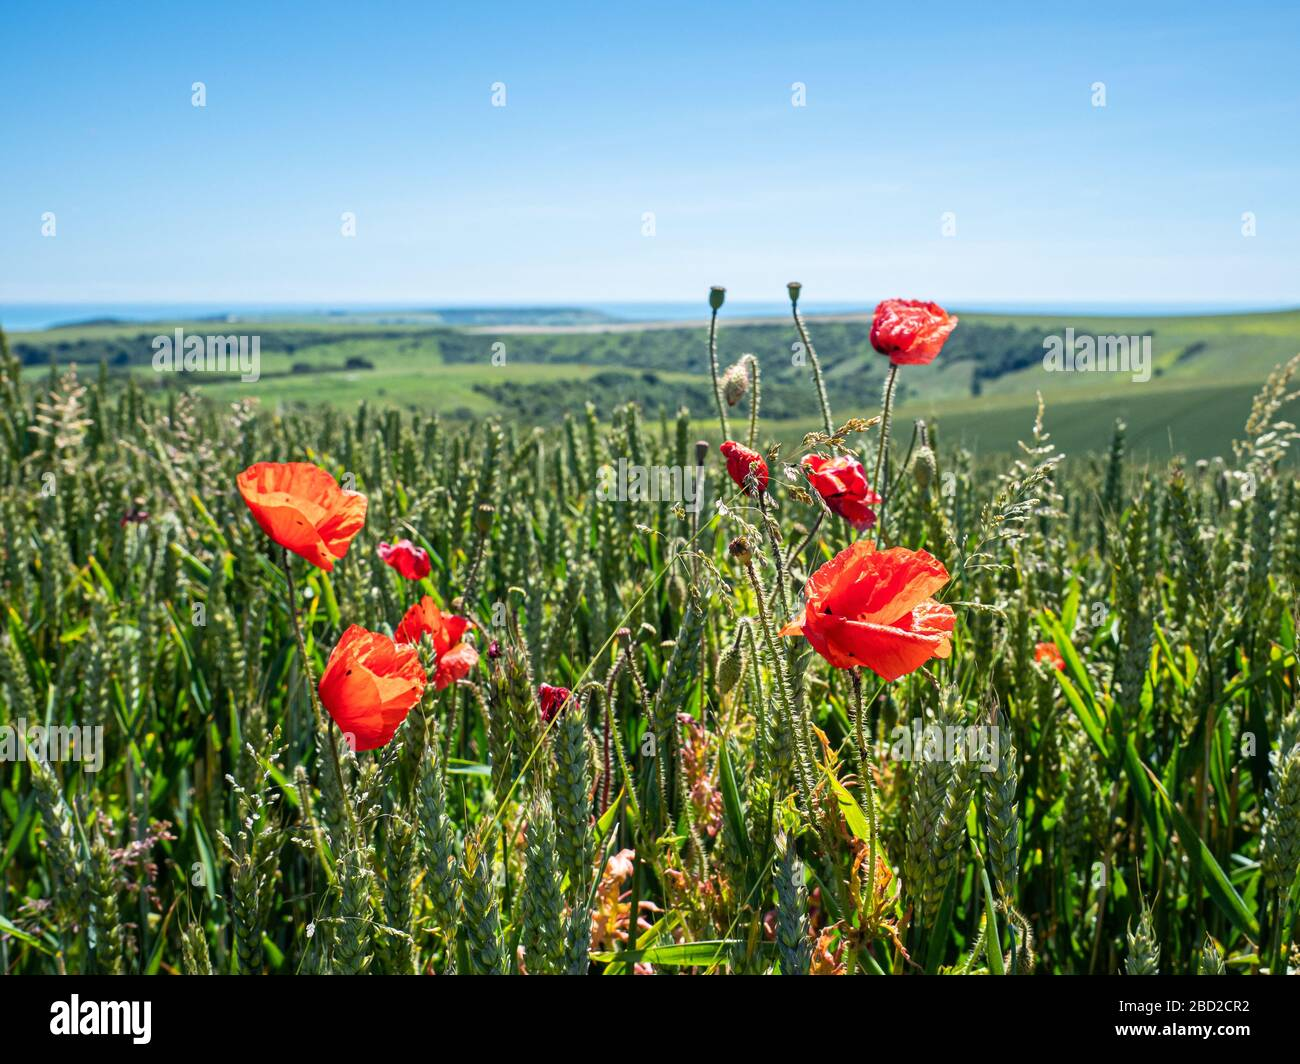 Red poppies bloom in a wheat field in the South Downs, a national park in England. The red poppy is a symbol of remembrance of the First World War. Stock Photo